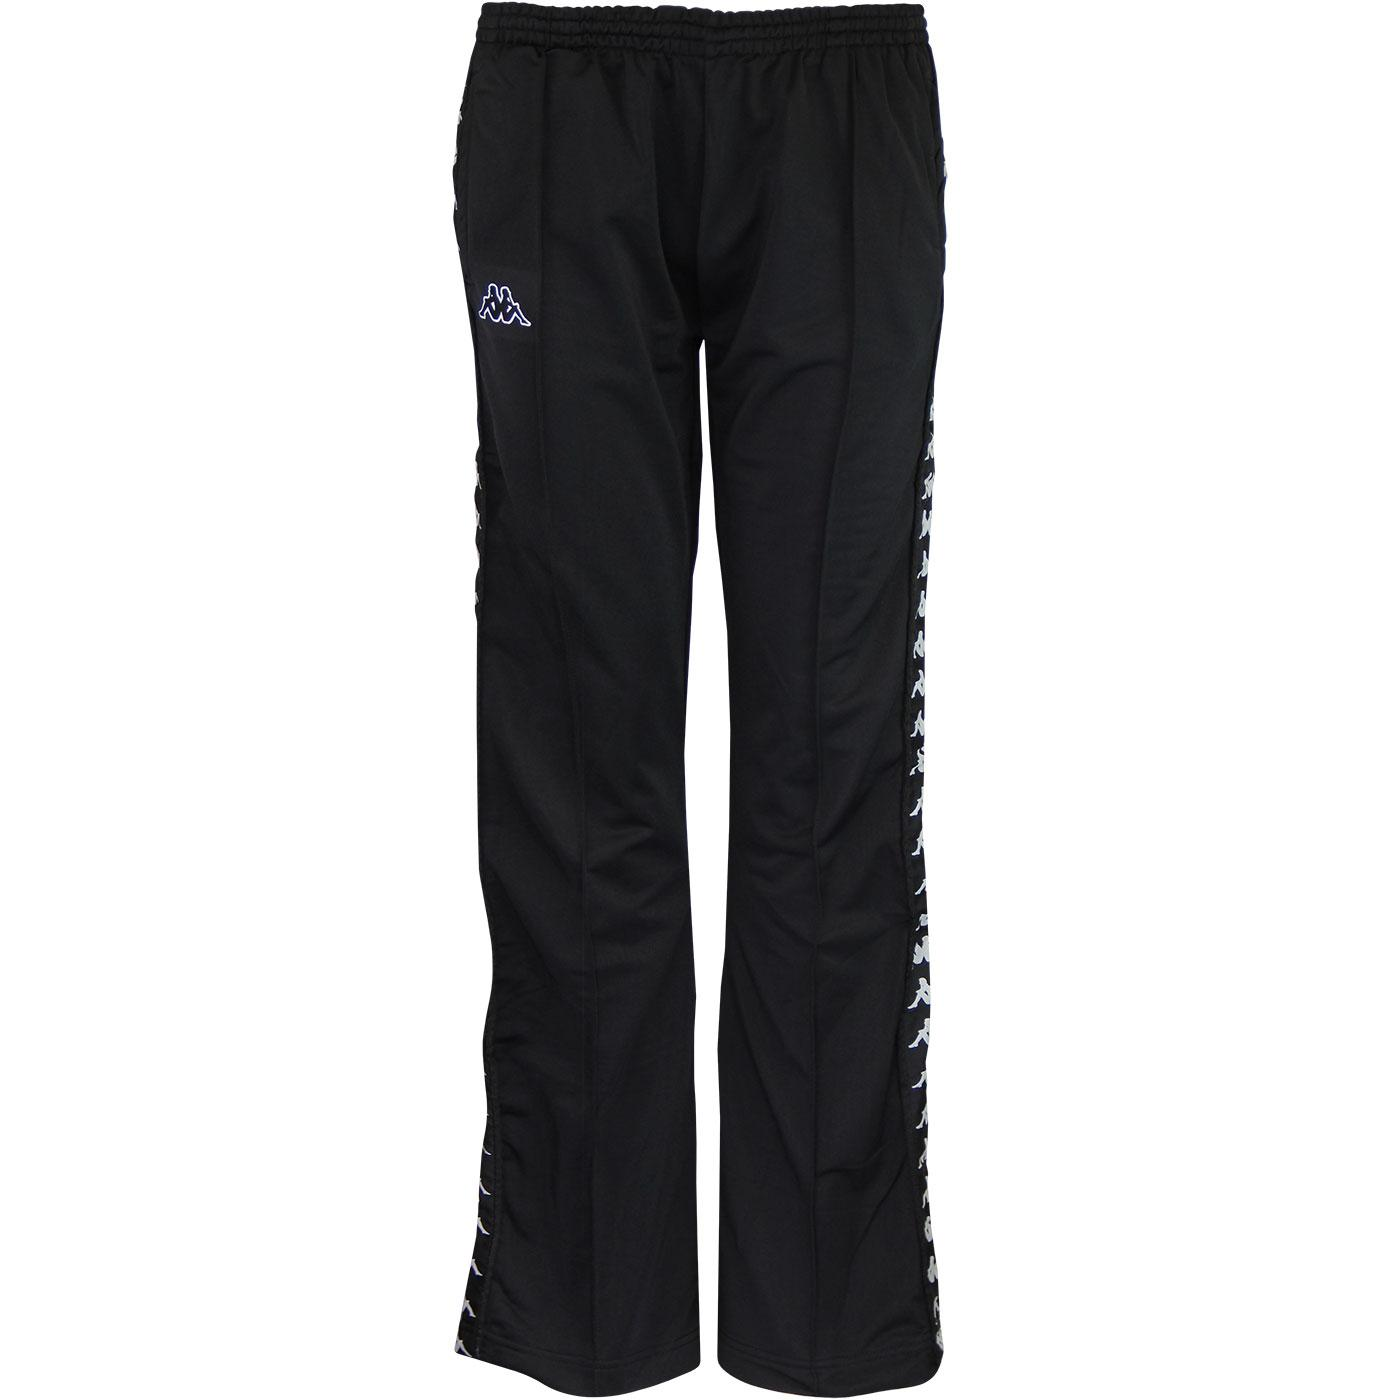 Wastoria Banda KAPPA Womens Snap Track Pants BLACK